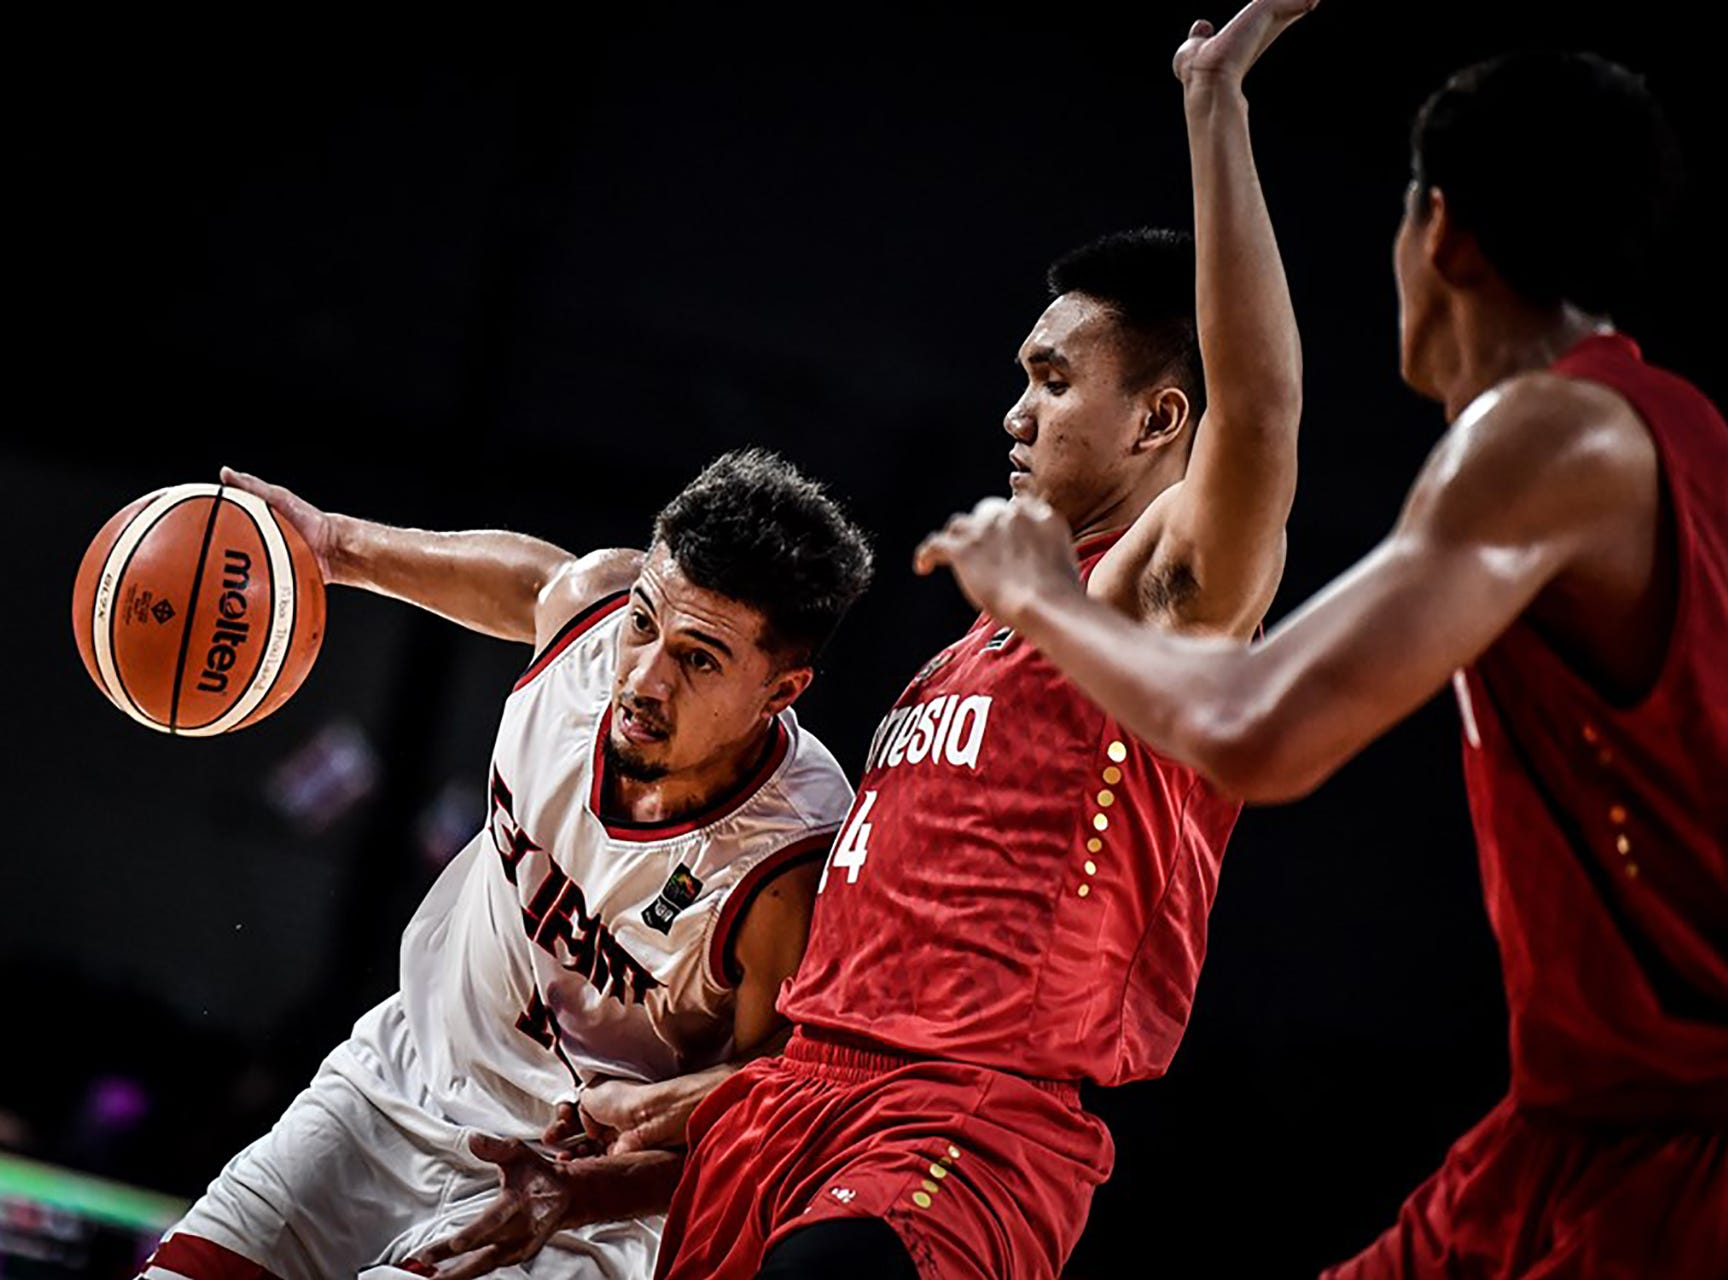 Team Guam's WIllie Stinnett goes low and around the defense in their game against Indonesia Thursday night in Thailand, at the FIBA Asia Cup 2021 Pre-Qualifiers.